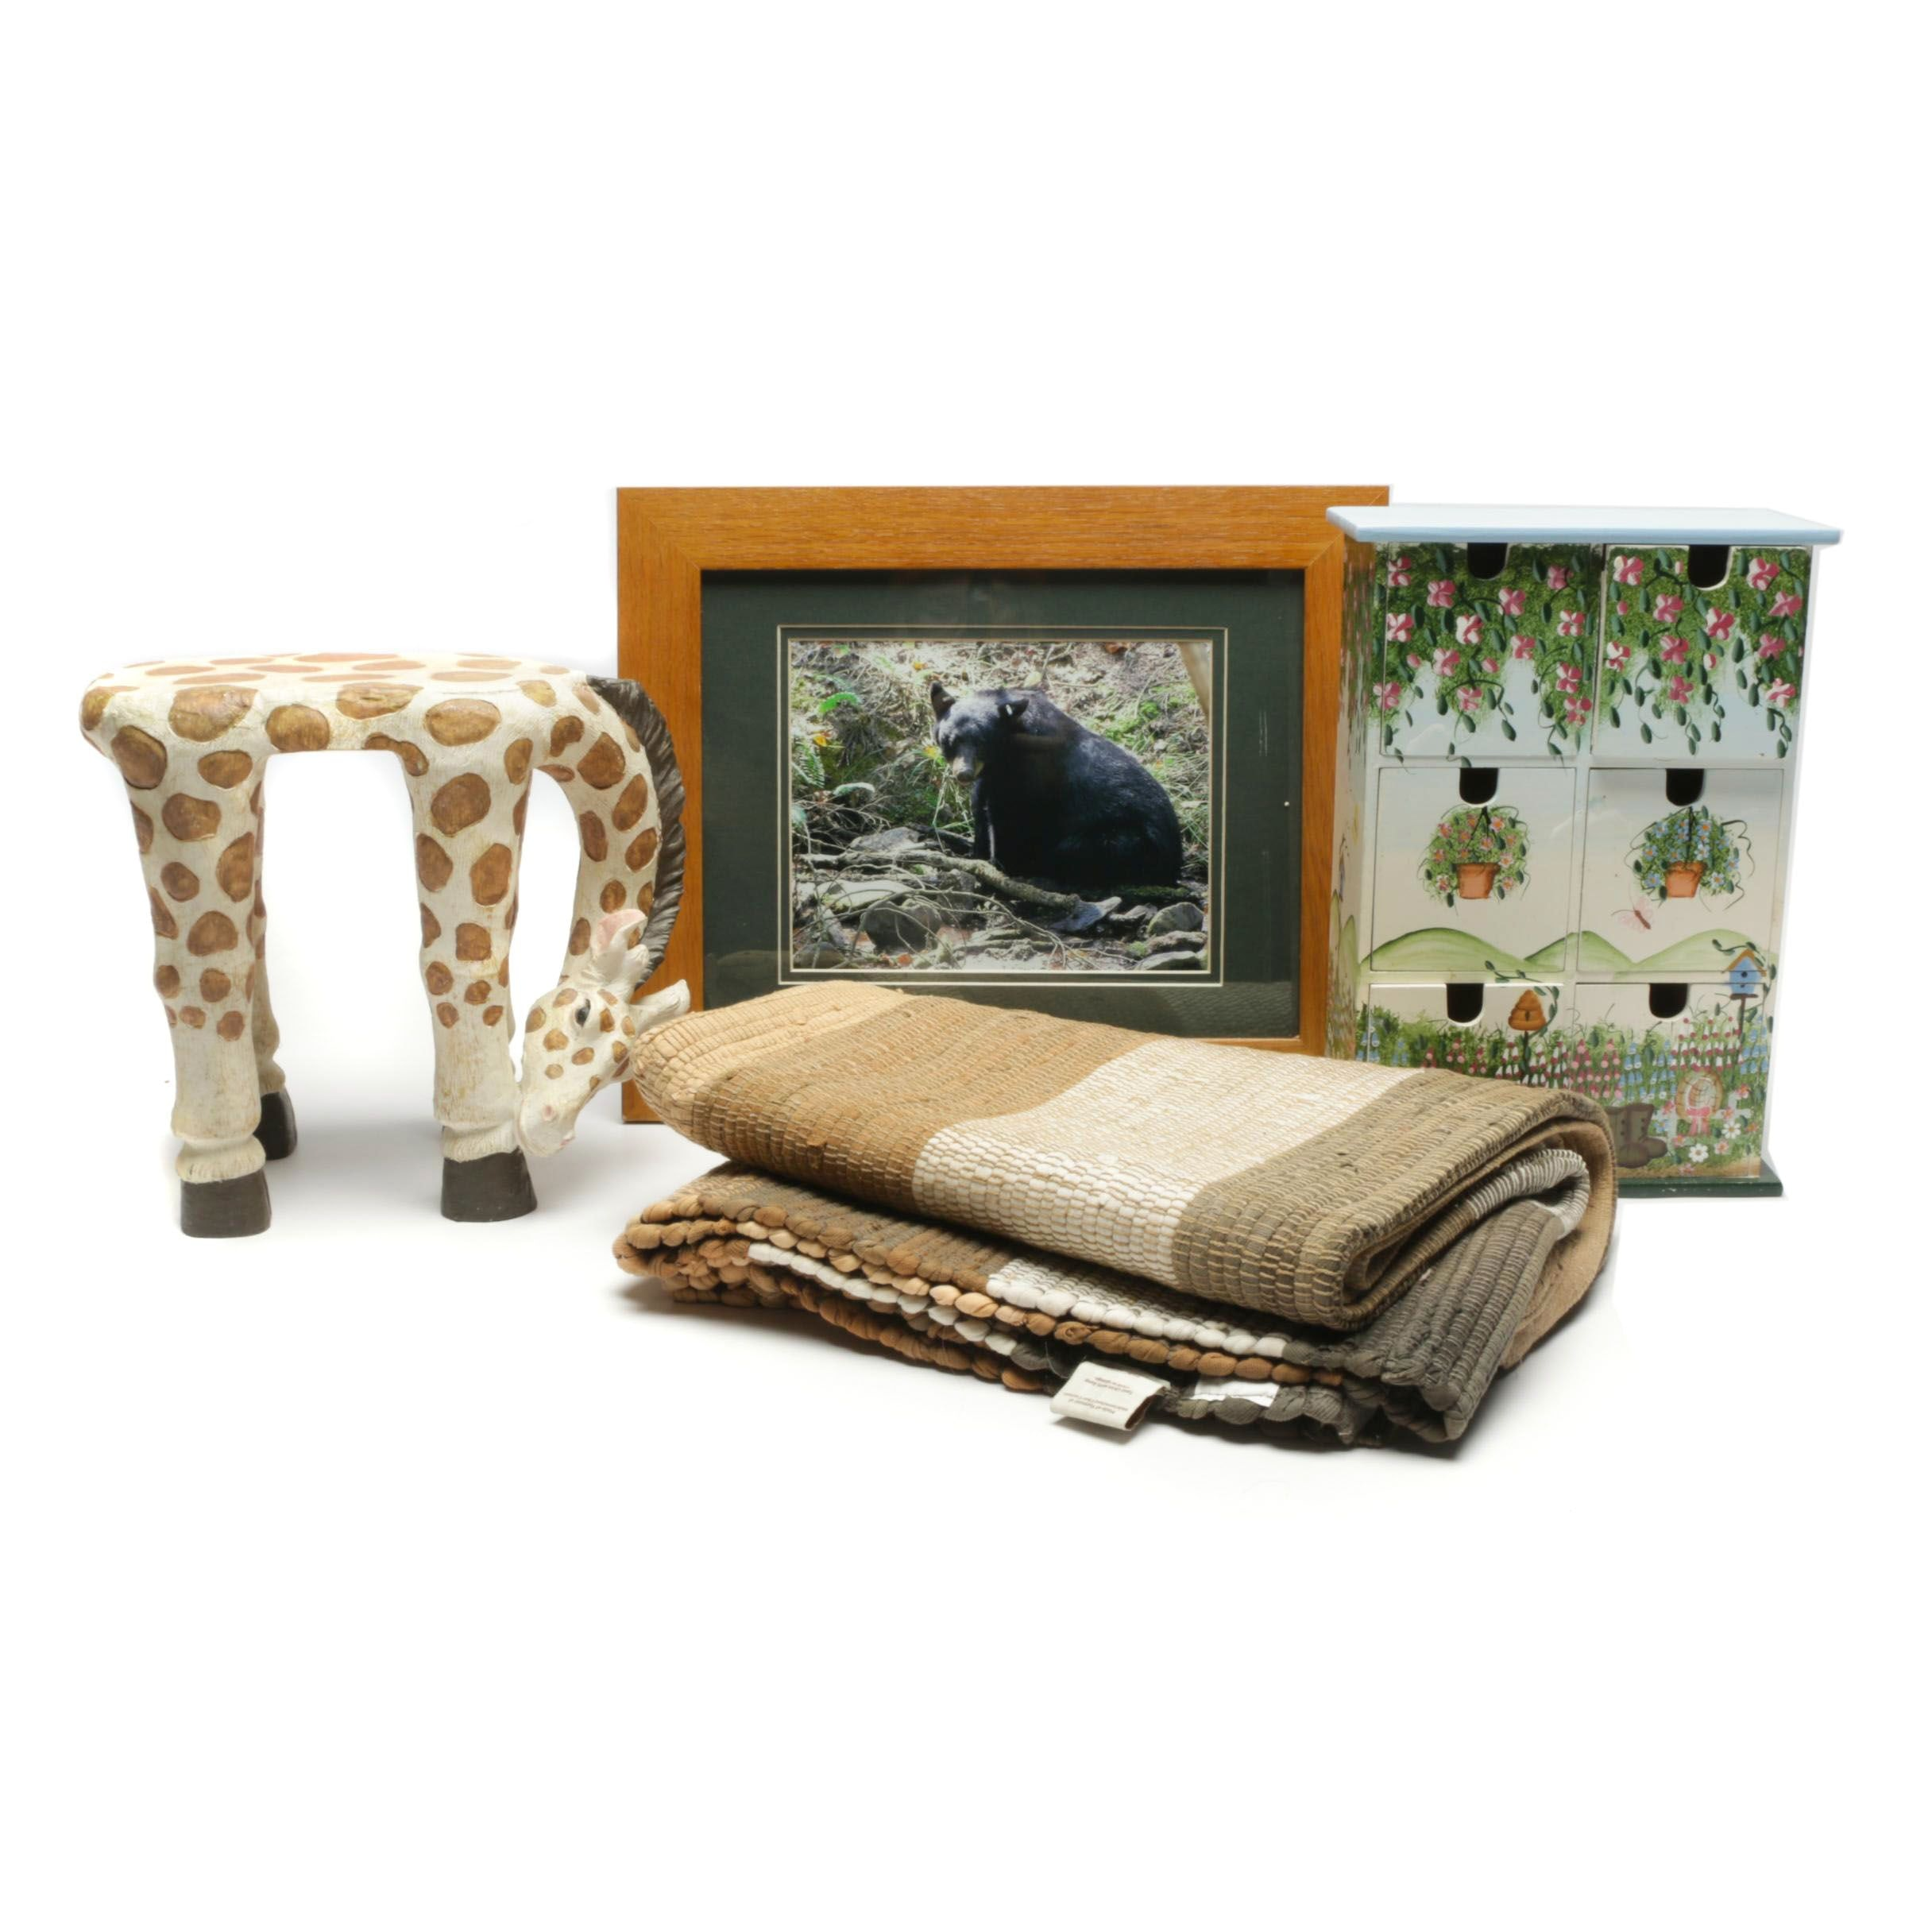 Wildlife Theme Decor, Painted Cabinet and Girraffe Footstool by Linens & Things